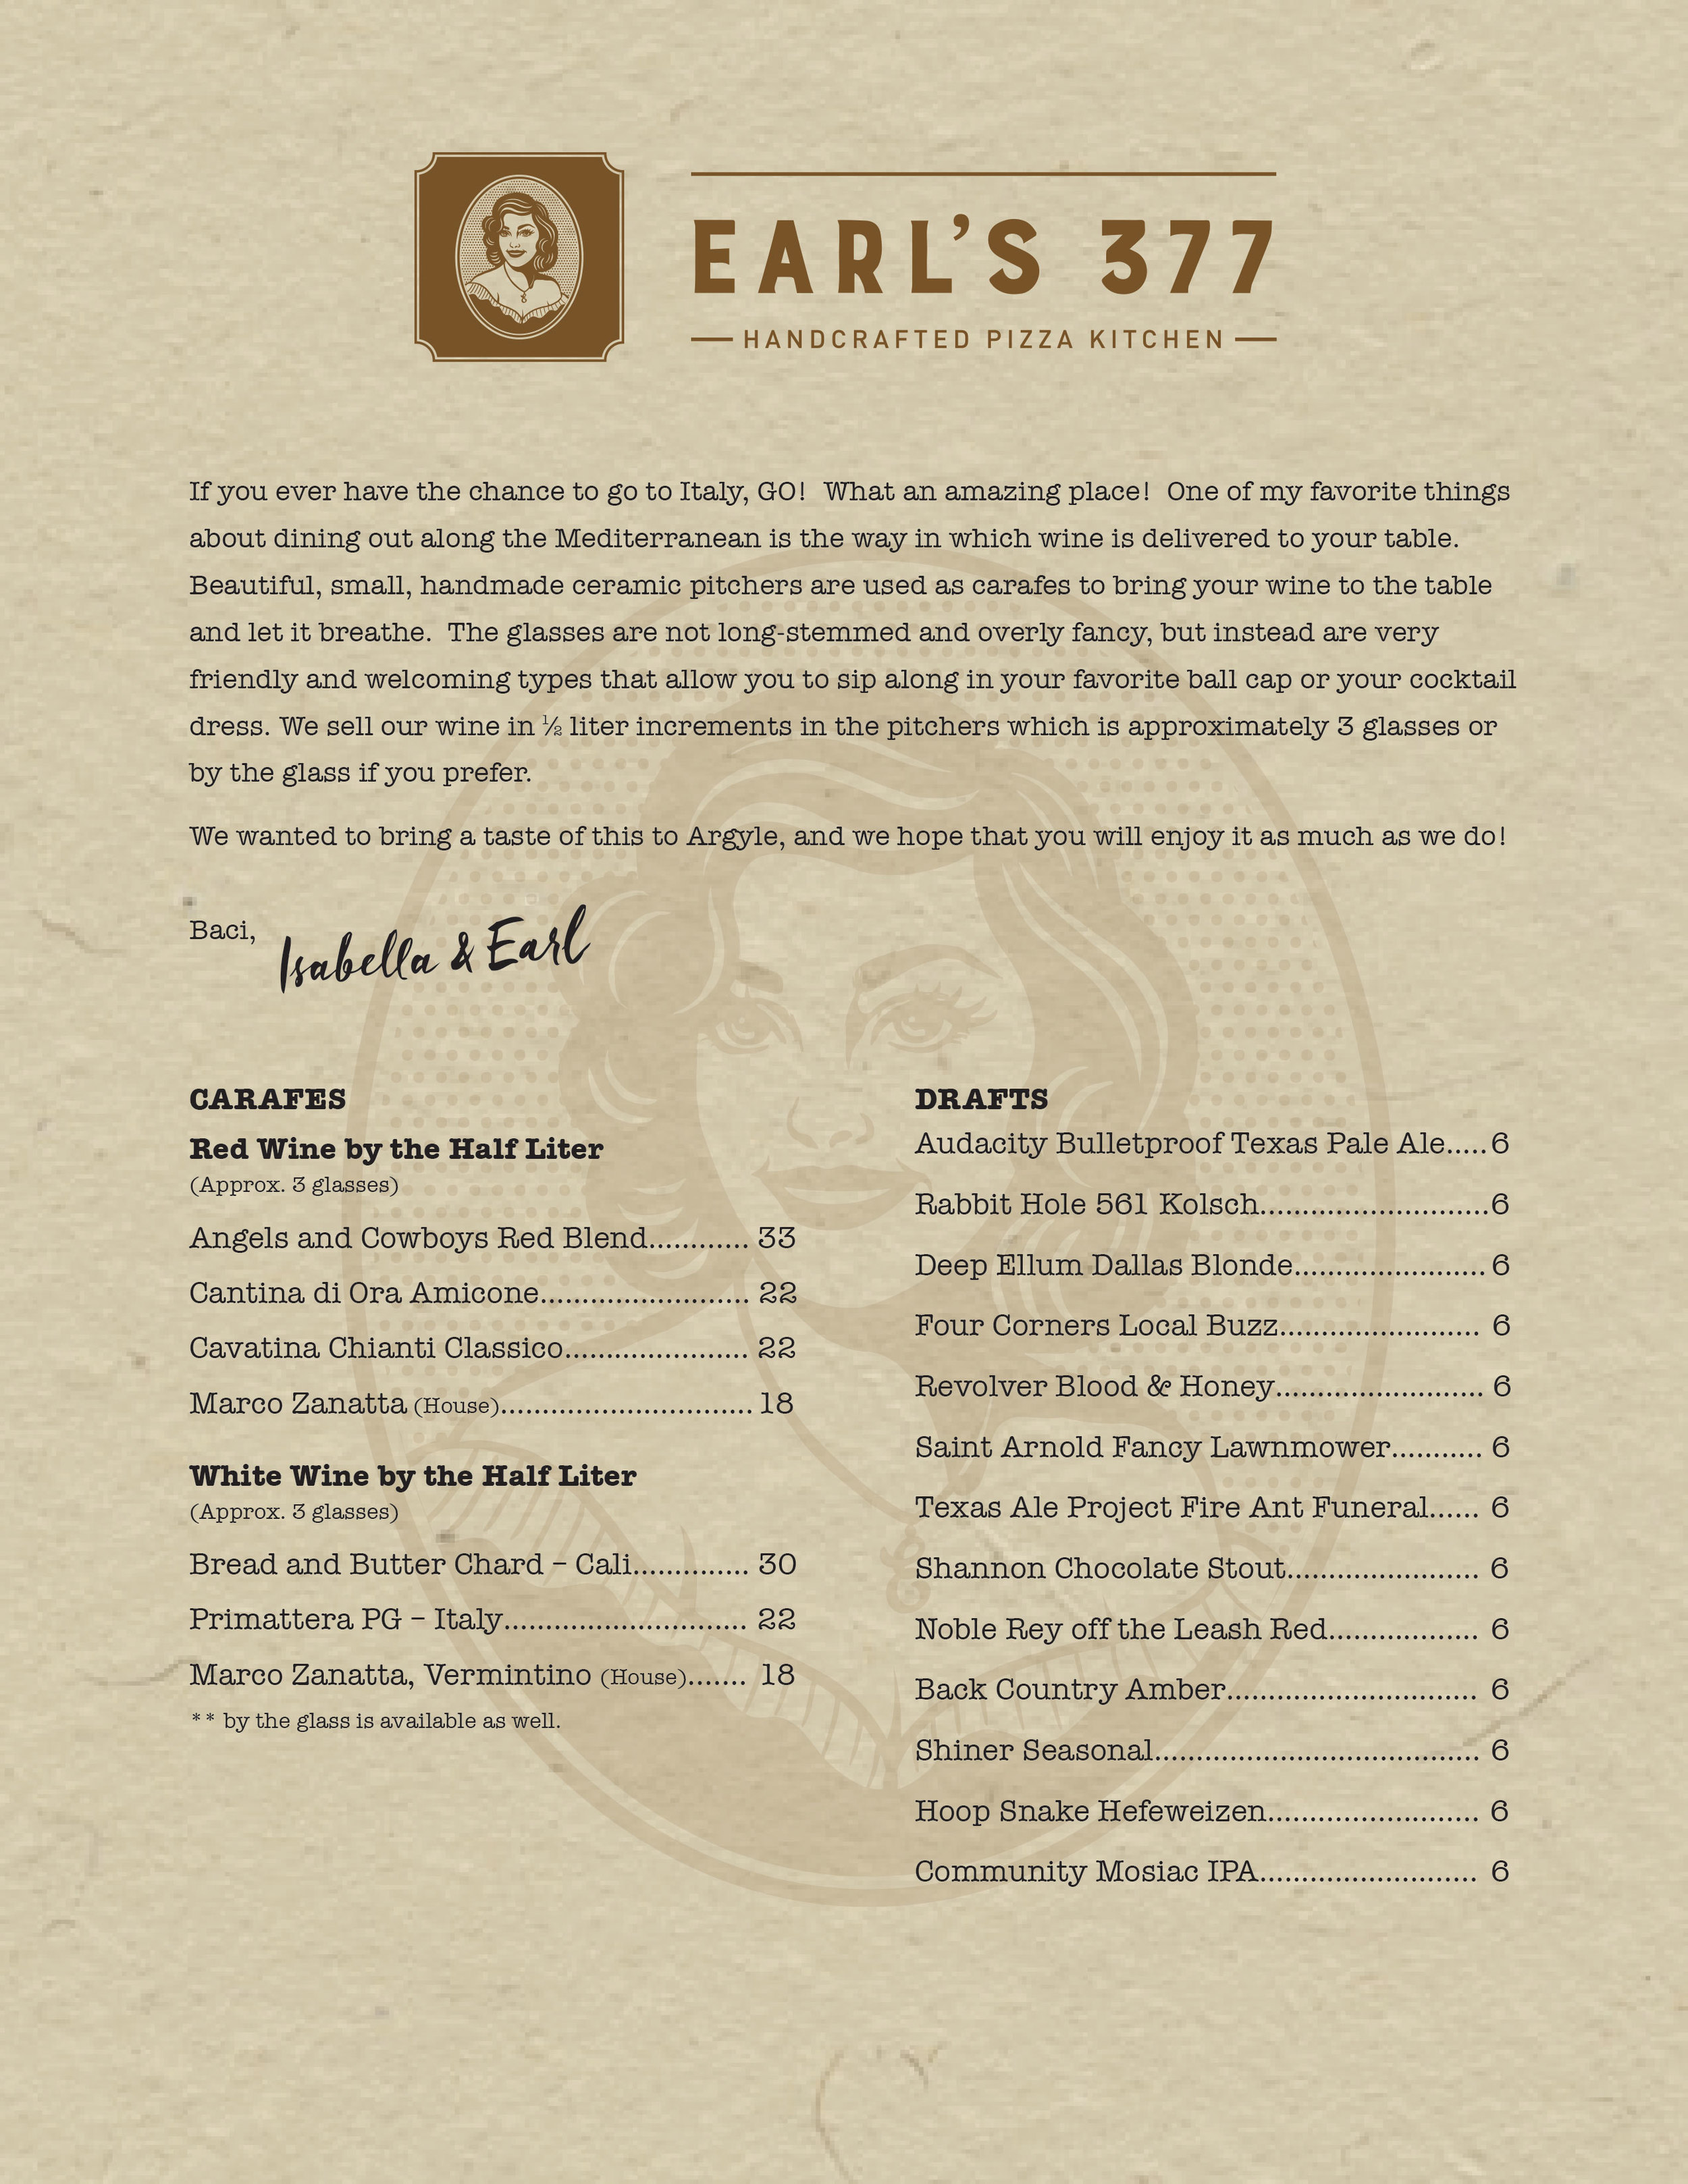 earls377_menu.jpg